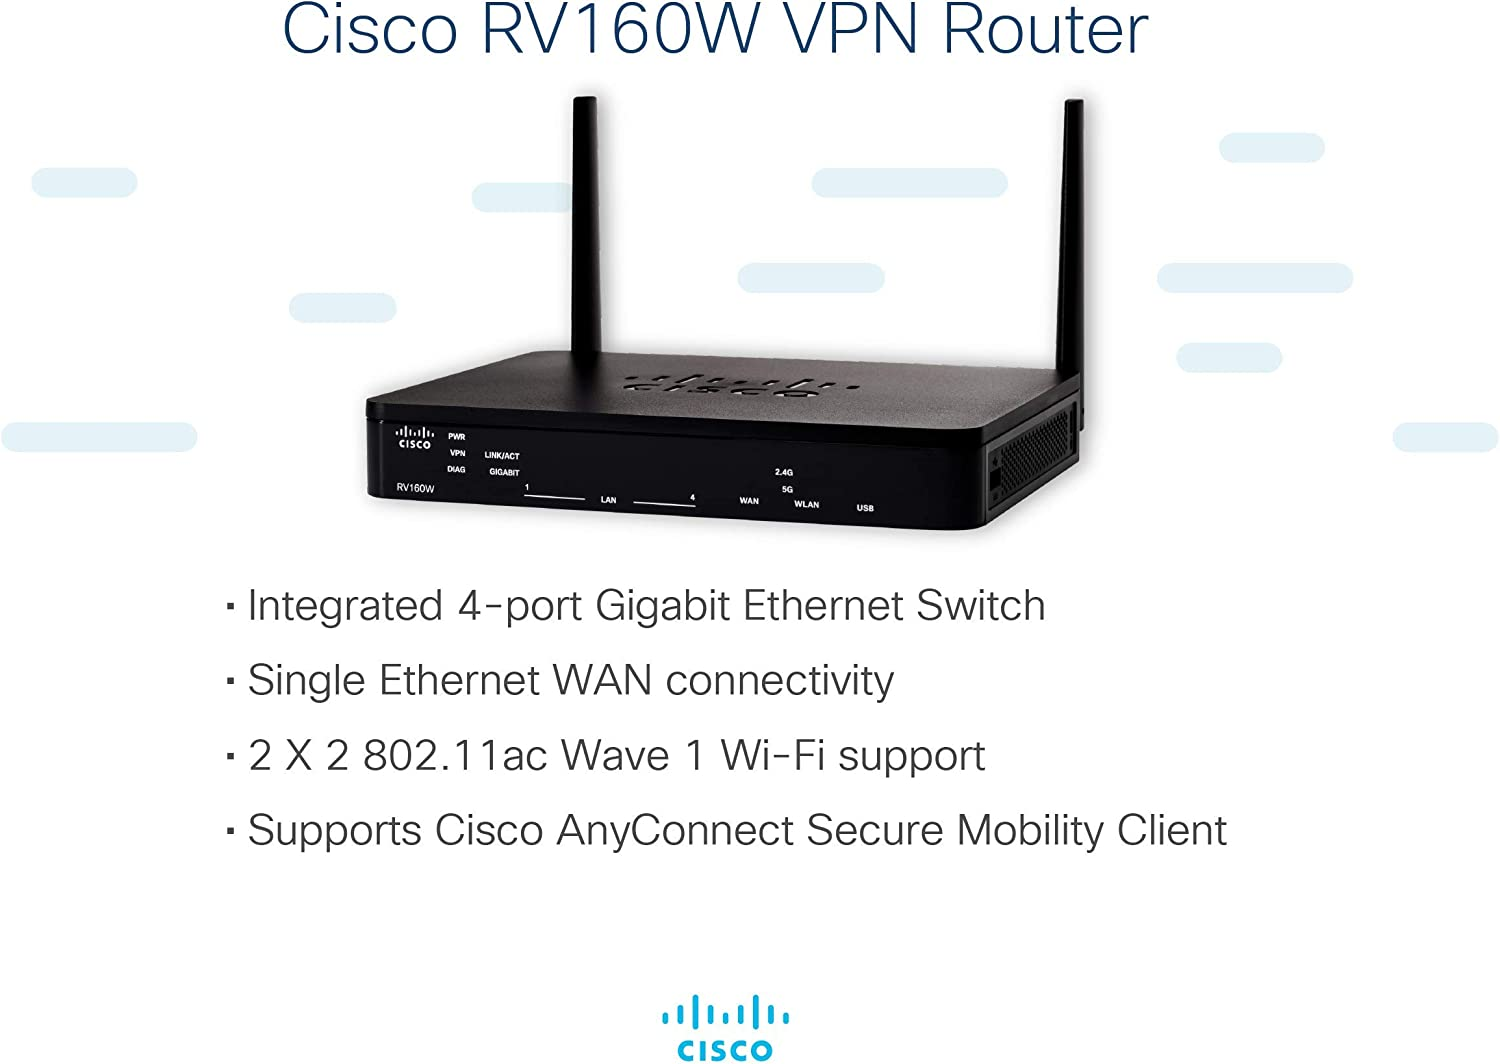 Cisco RV260W VPN Router with 8 Gigabit Ethernet Limited Lifetime Protection GbE Ports Plus Wireless-AC VPN Firewall RV260W-A-K9-NA